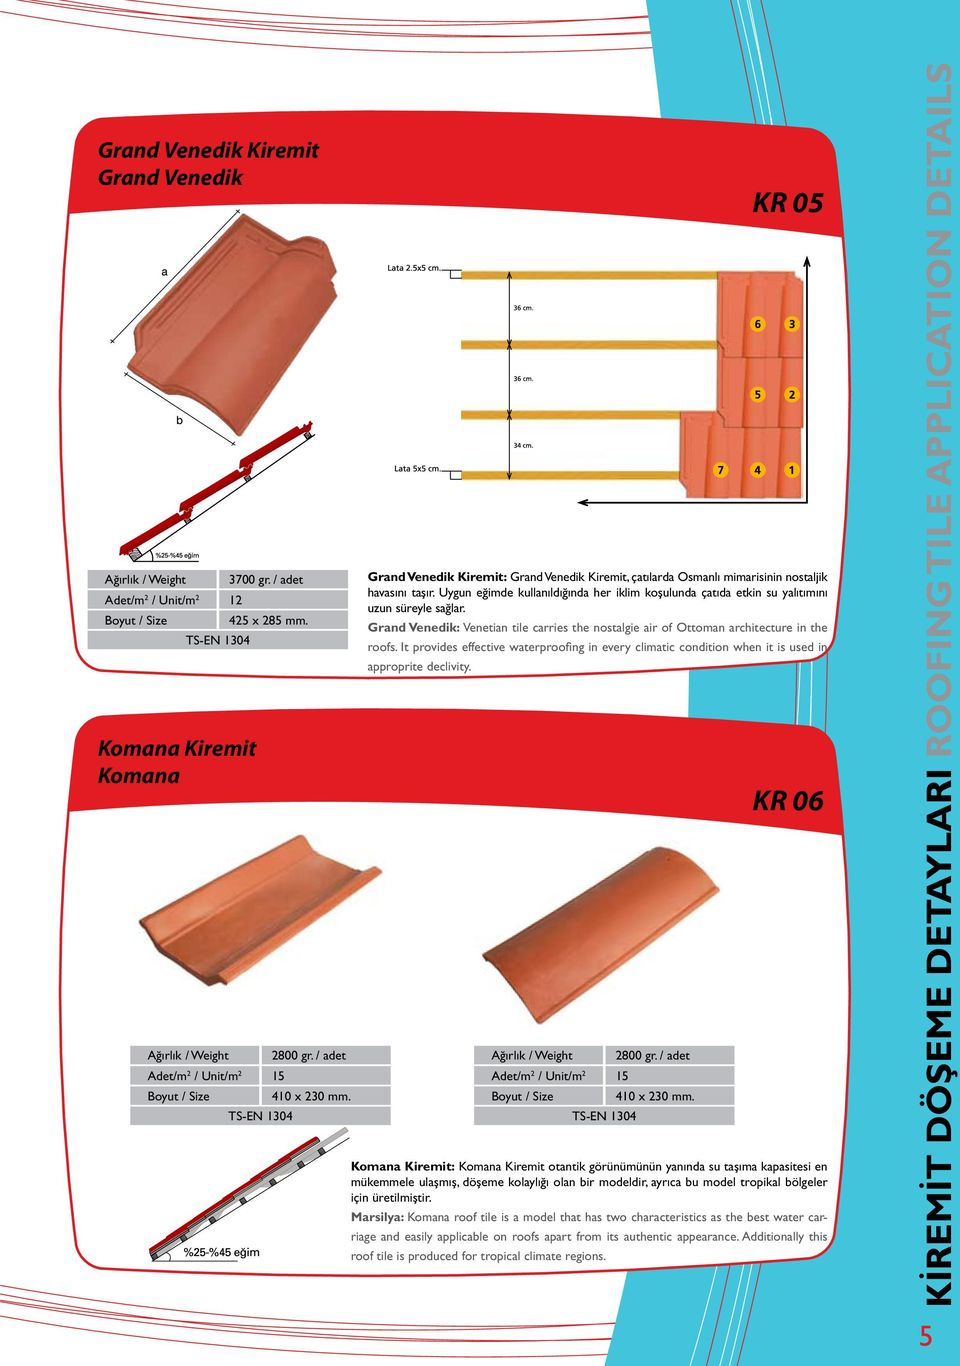 It provides effective waterproofing in every climatic condition when it is used in approprite declivity. Komana Kiremit Komana 2800 gr. / adet 410 x 230 mm.